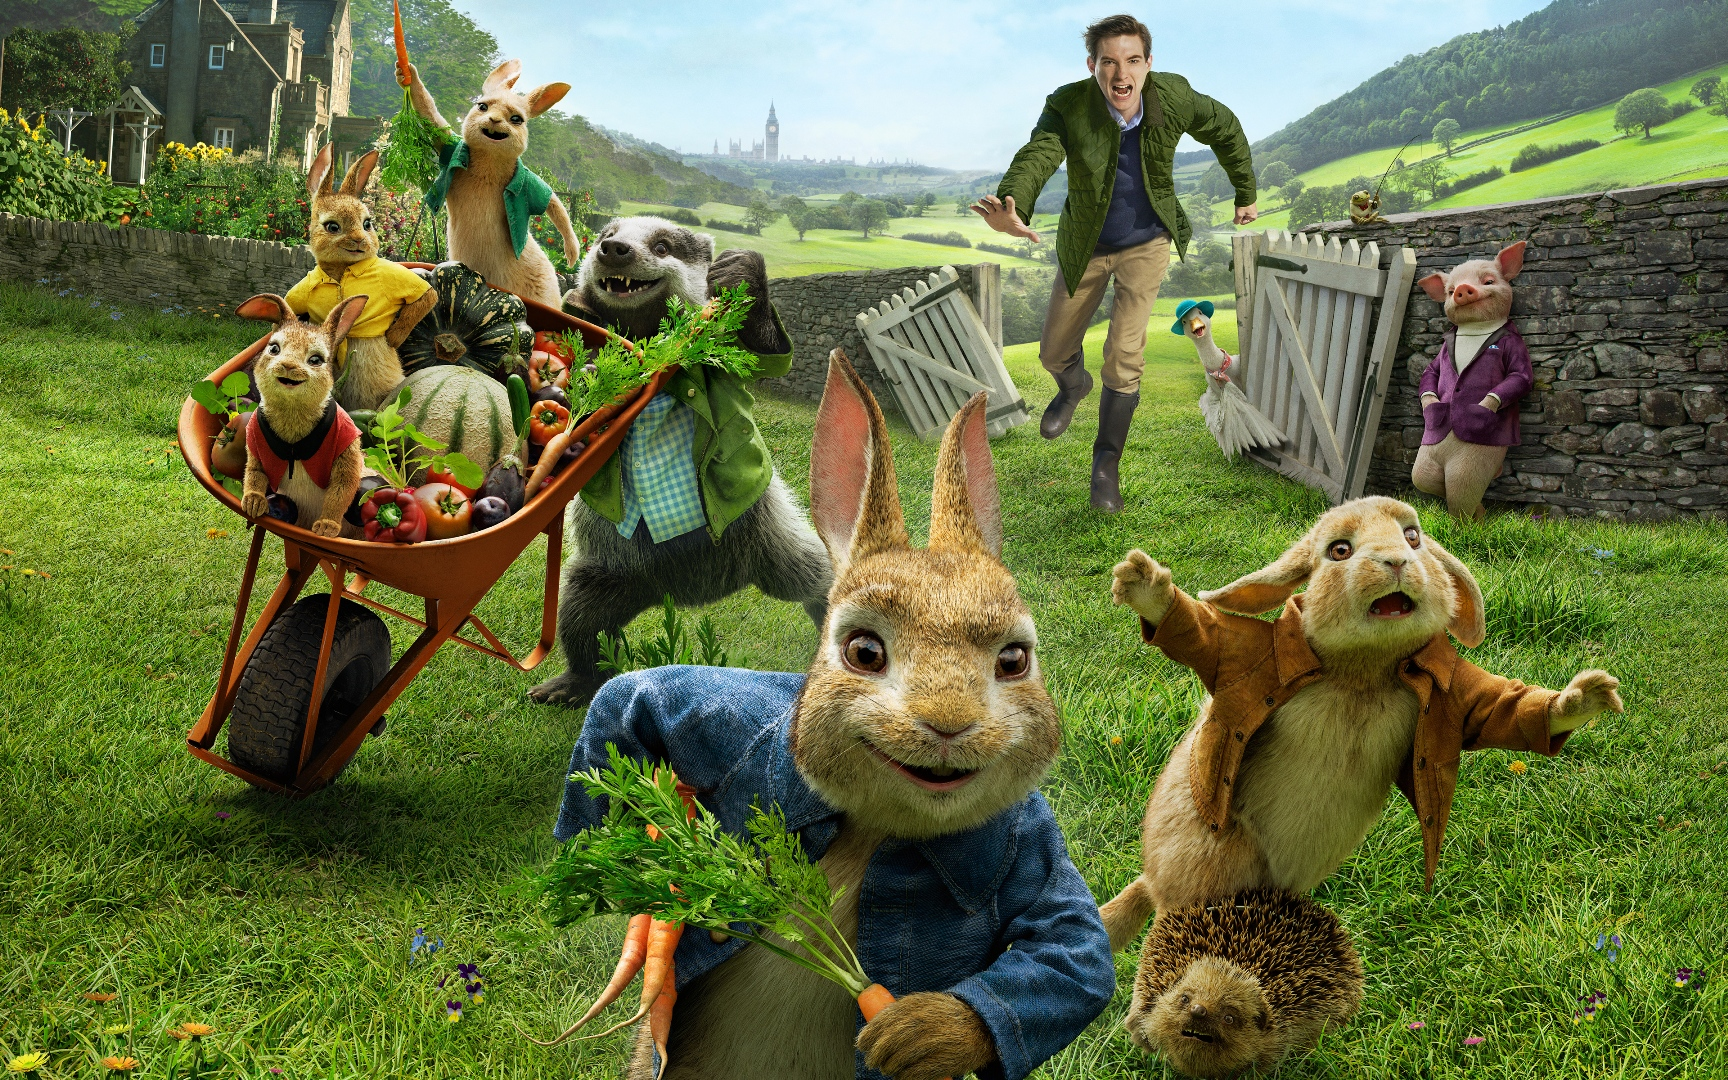 Peter Rabbit movie wallpaper